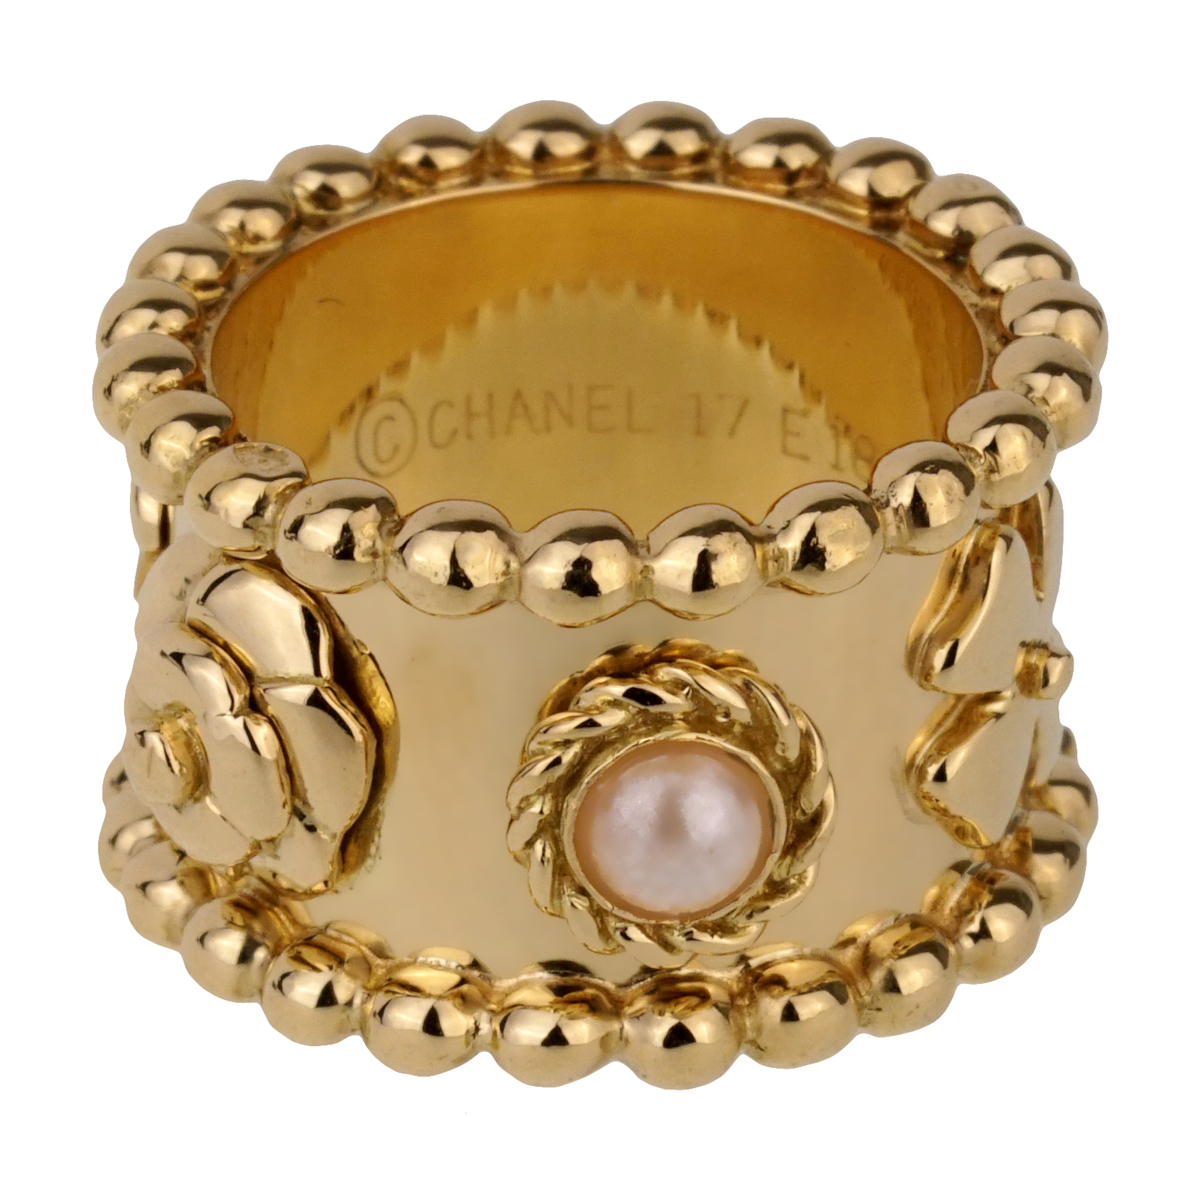 Chanel Lucky Pearl Gold Band Ring - Chanel Jewelry